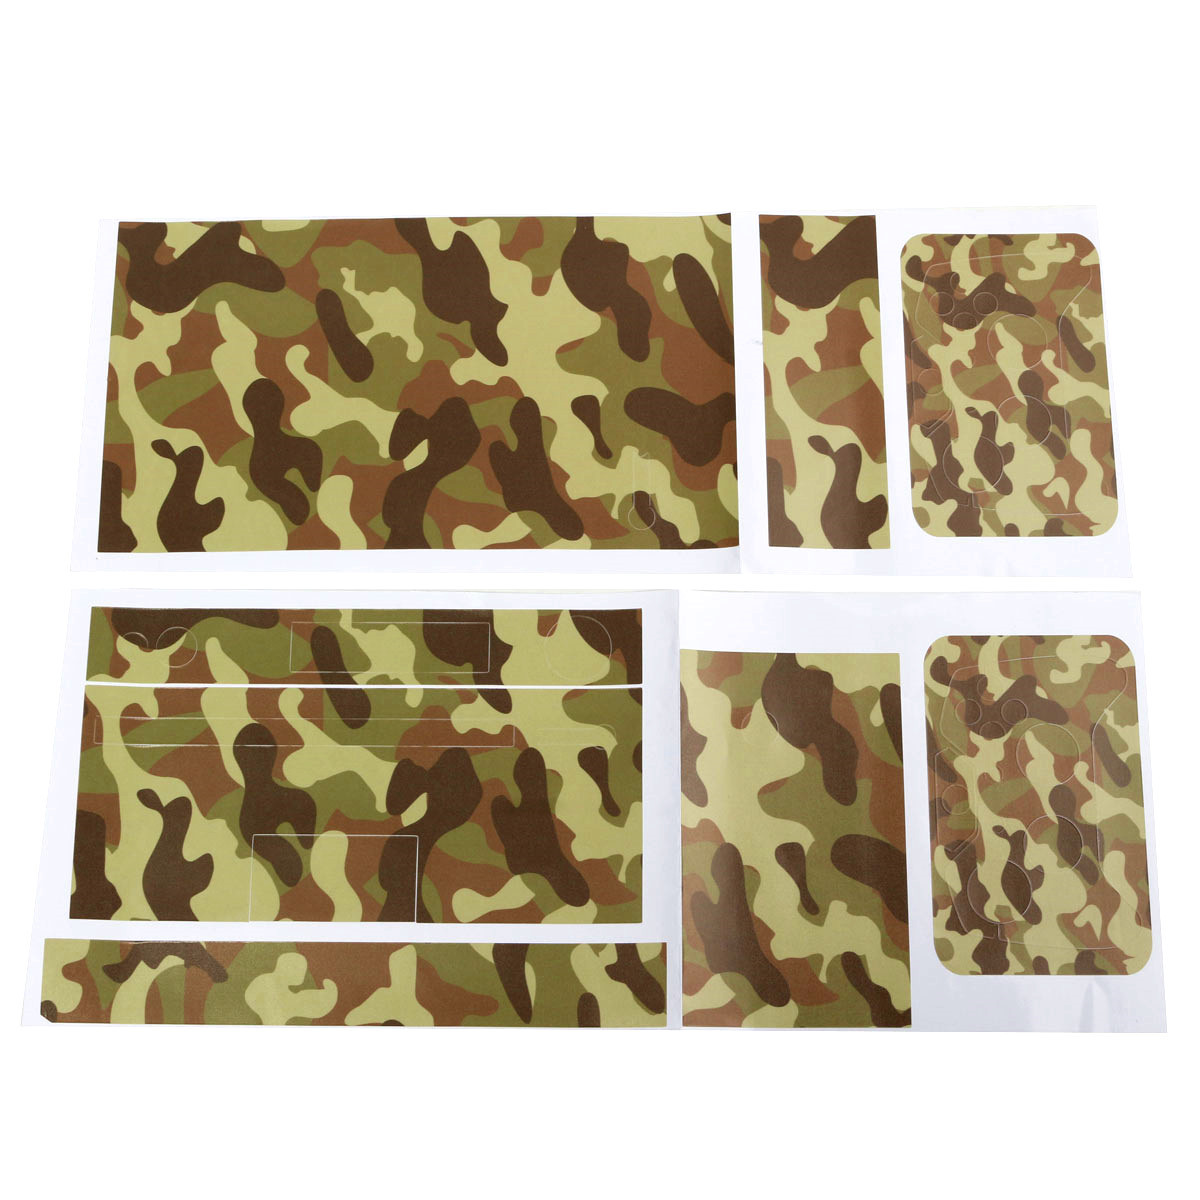 Camouflage Pattern Skin Sticker for XBOX One Console Controller Protector Cover